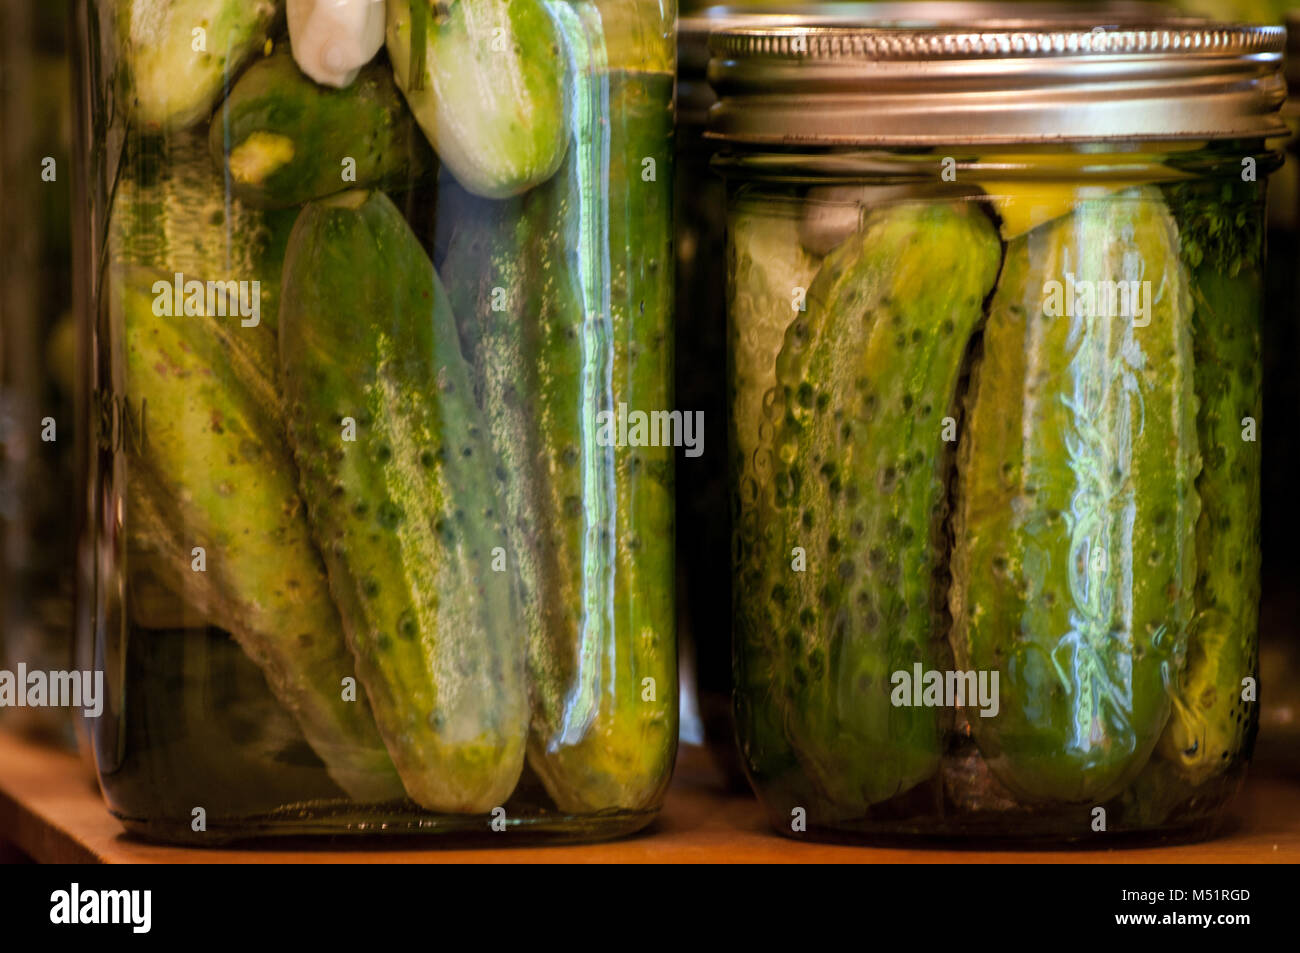 Two bottles of Dill Pickles in a Quart and Pint bottle - Stock Image